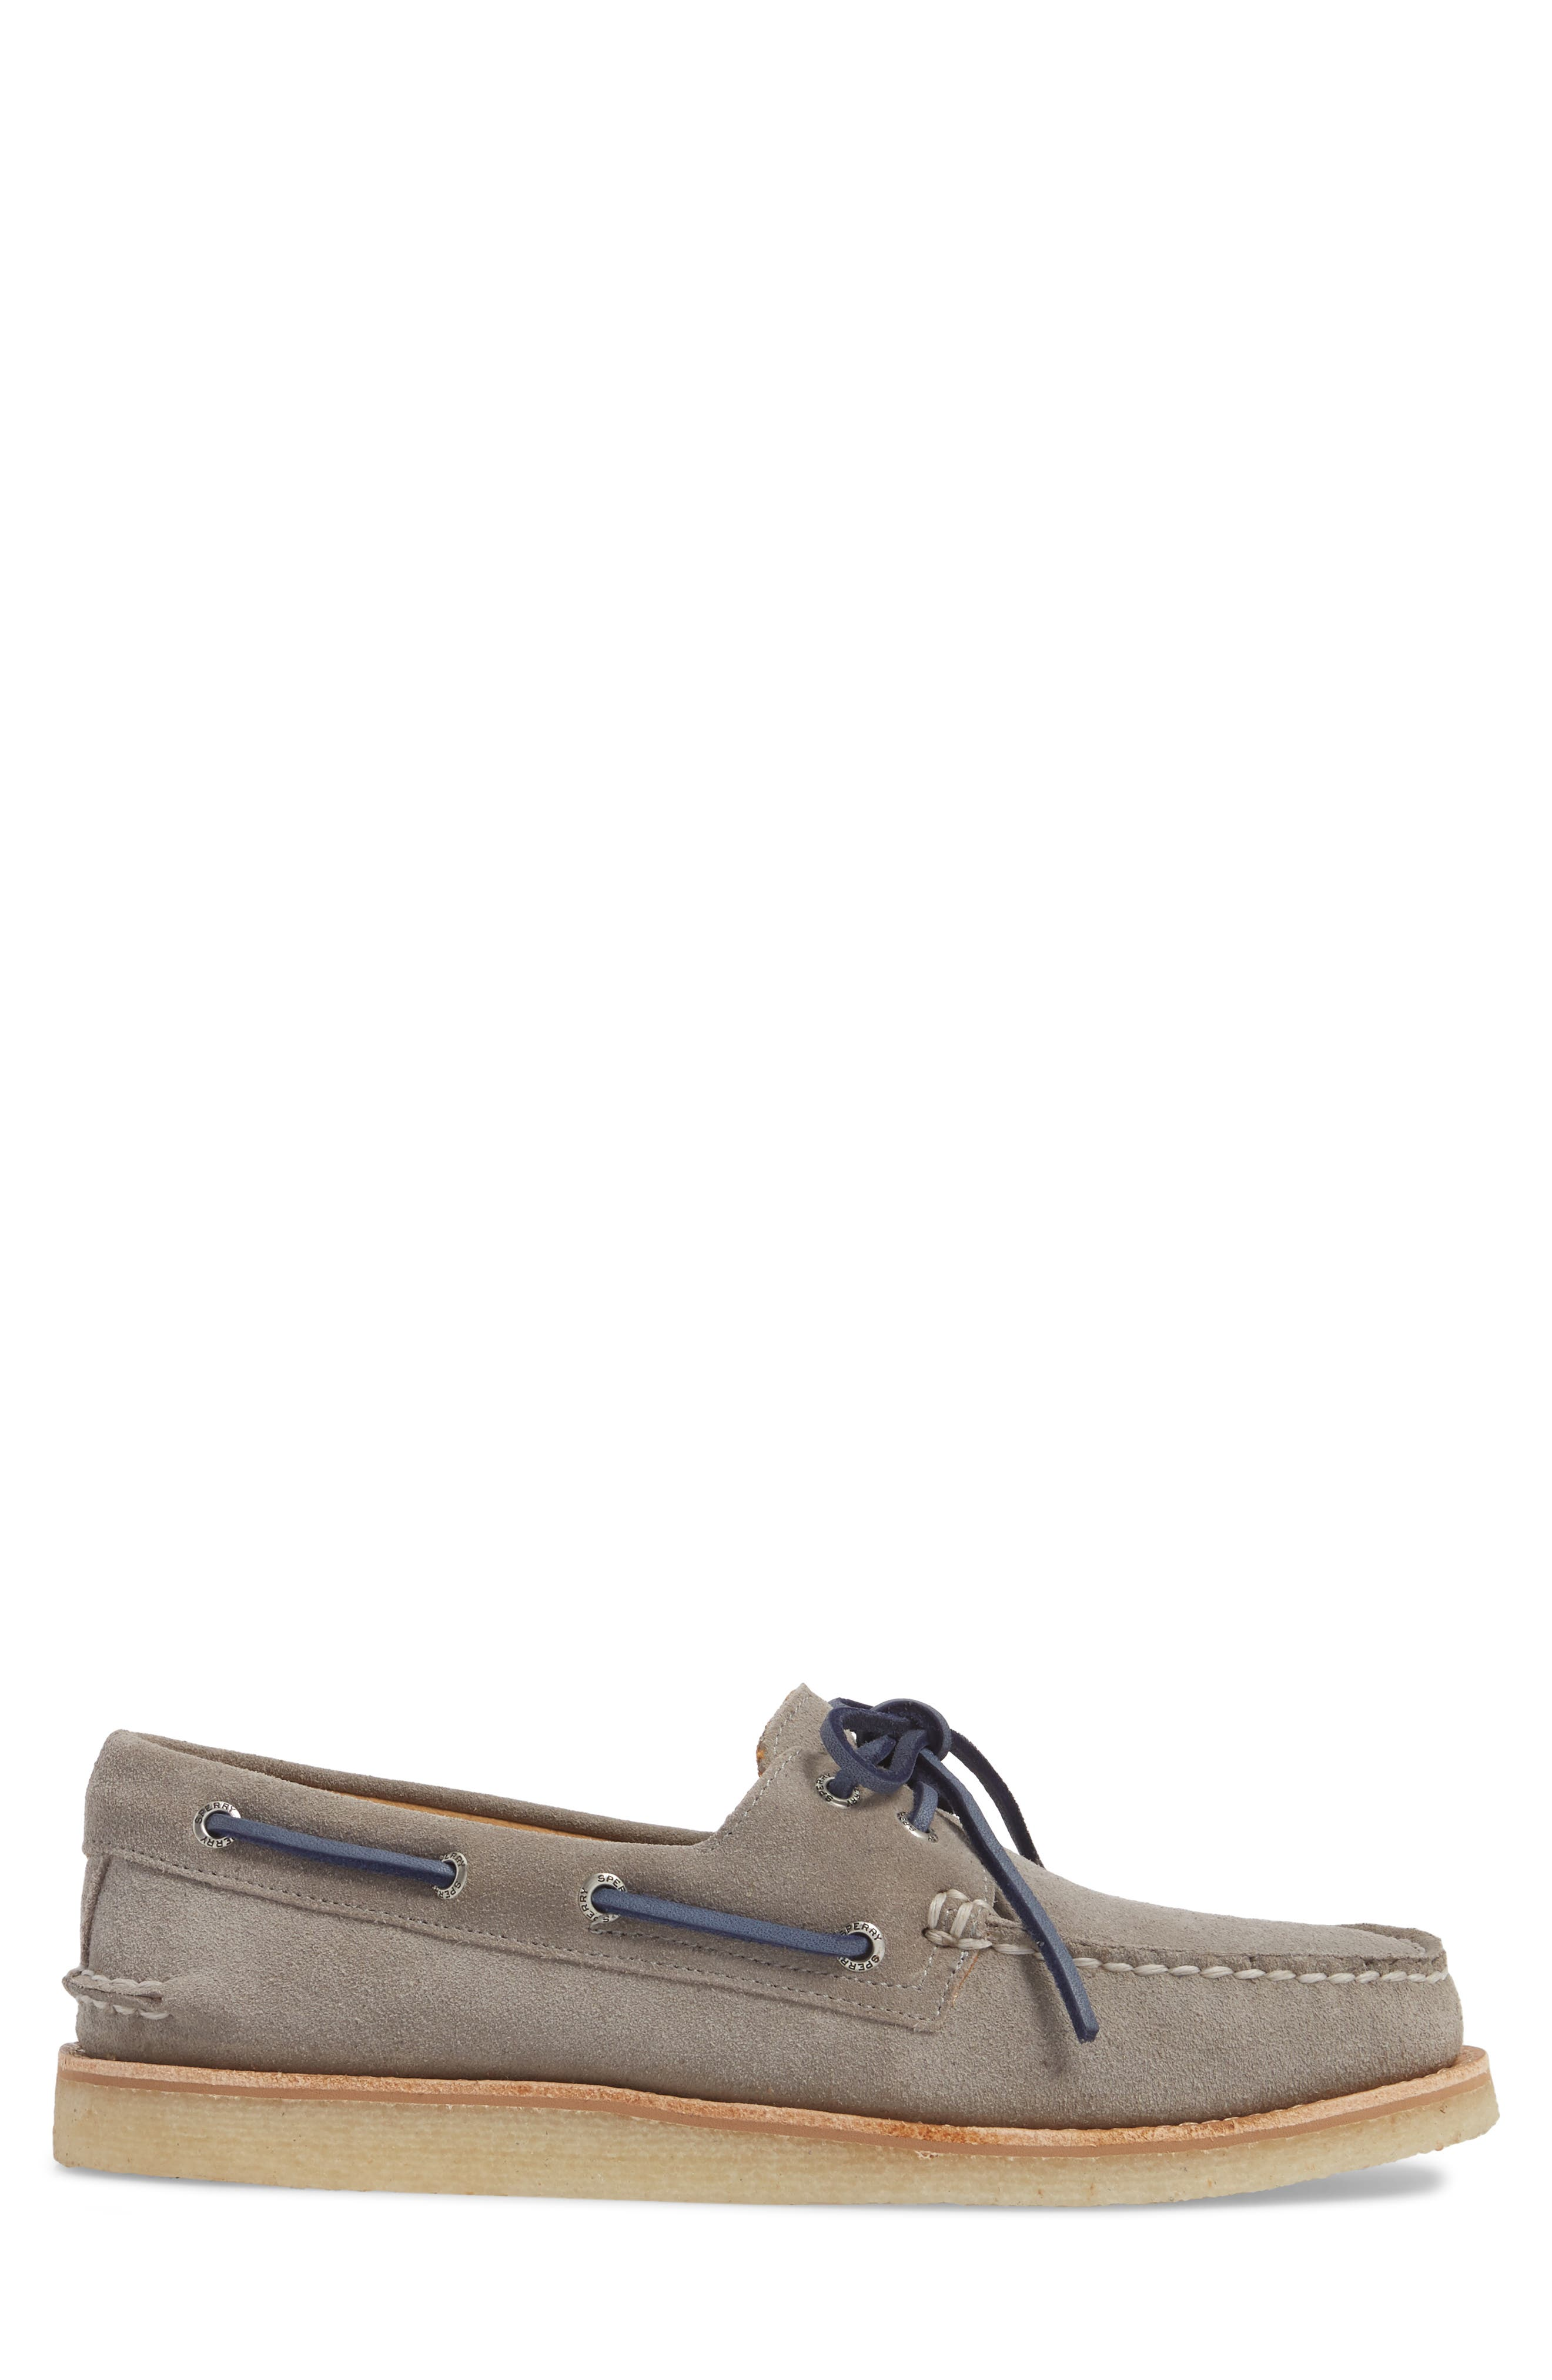 Gold Cup AO 2-Eye Boat Shoe,                             Alternate thumbnail 3, color,                             Grey Leather